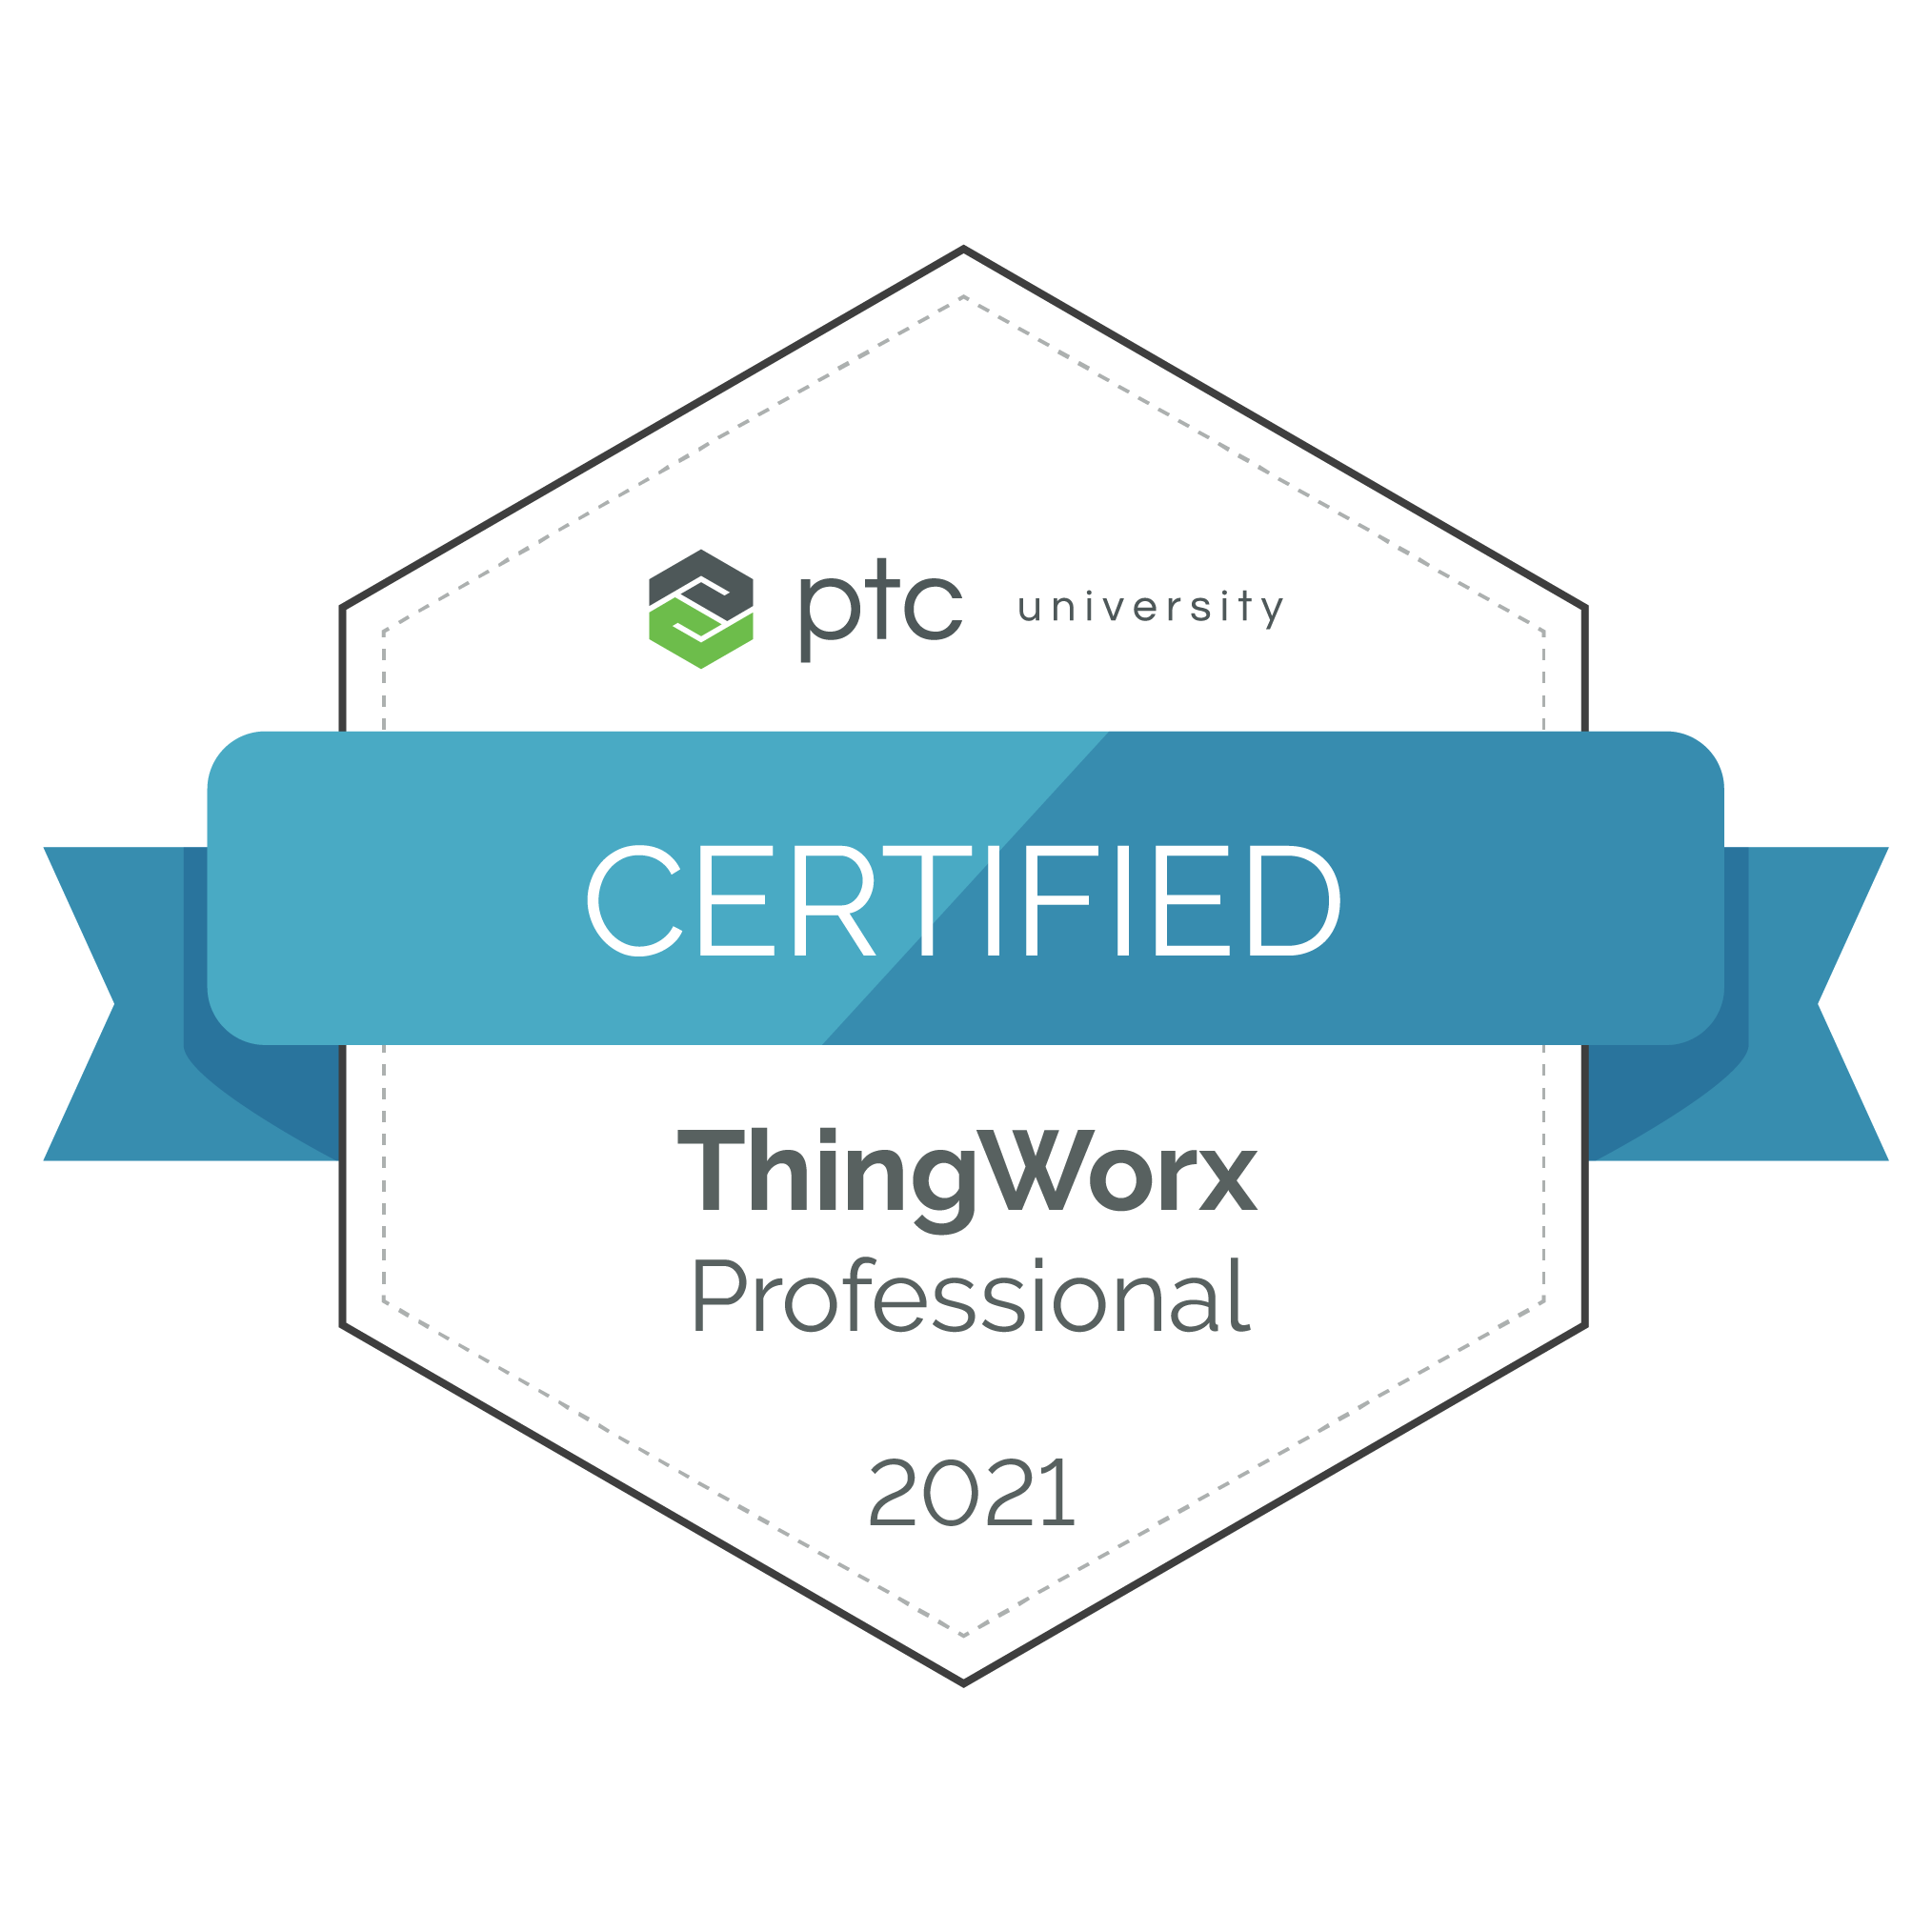 ThingWorx Professional Certification 2021